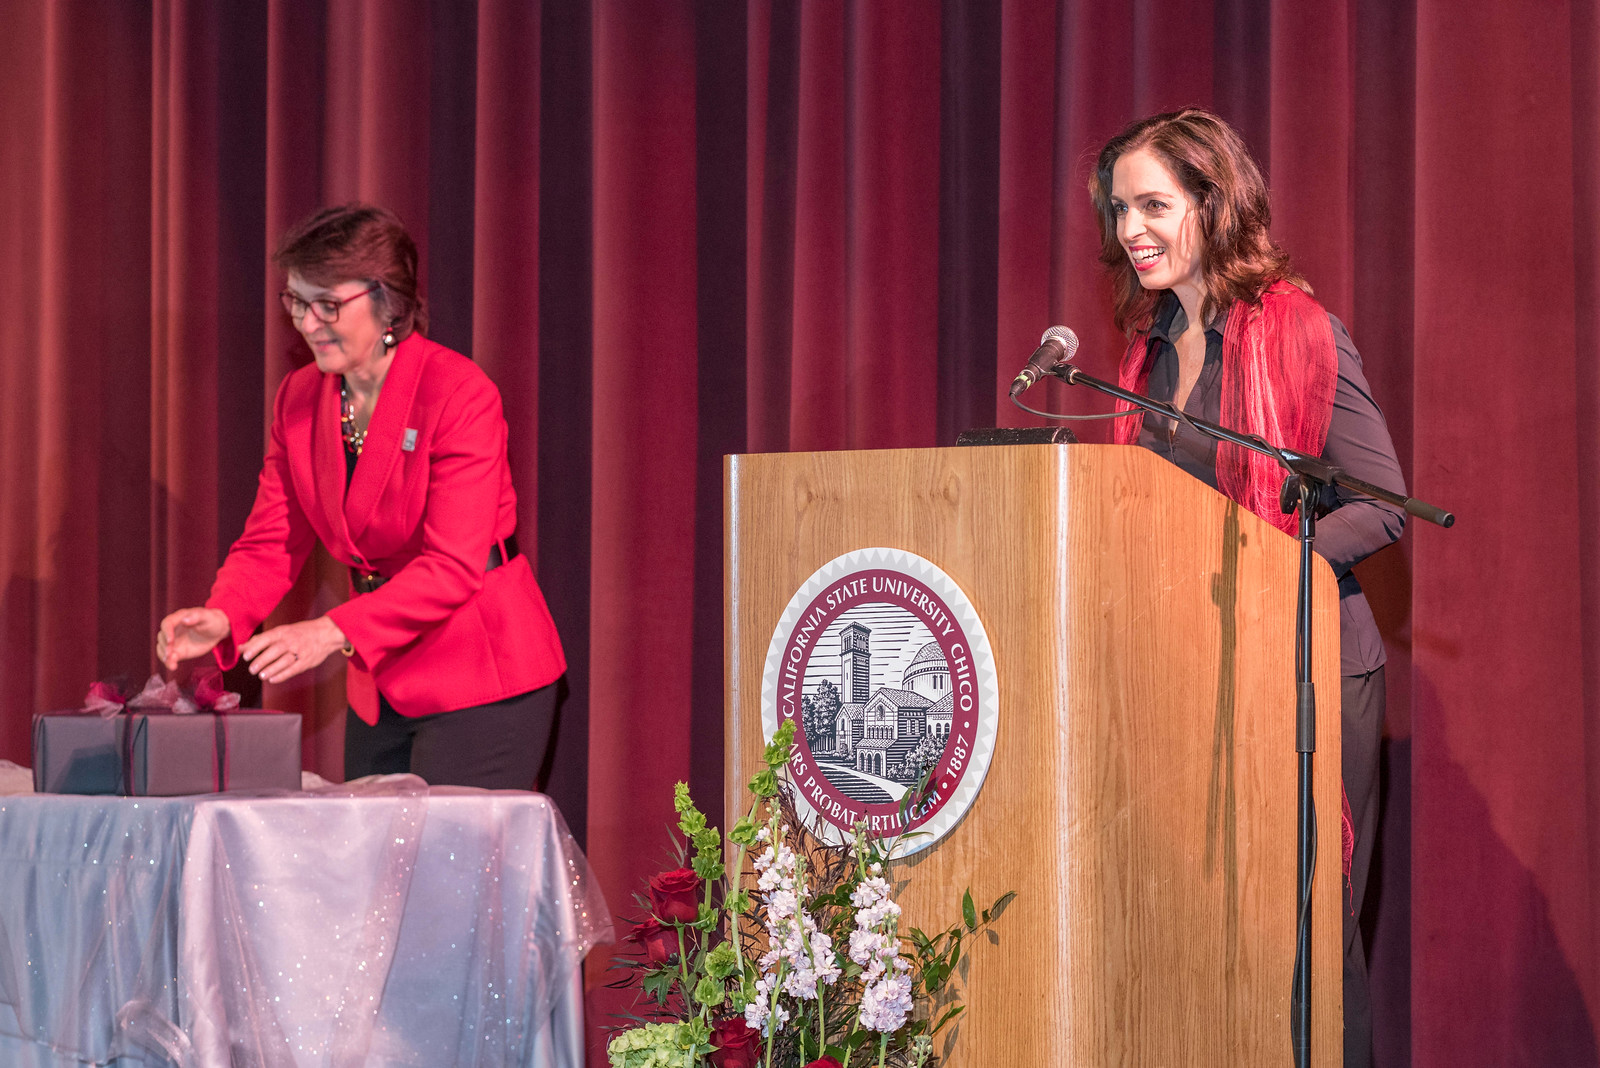 President Gayle Hutchinson (left) listens to Distinguished Alumni J'Anna Jacoby (right) talk to guests and honorees during the Distinguished Alumni Dinner on Friday, March 24, 2017 in Chico, Calif. (Jason Halley/University Photographer)